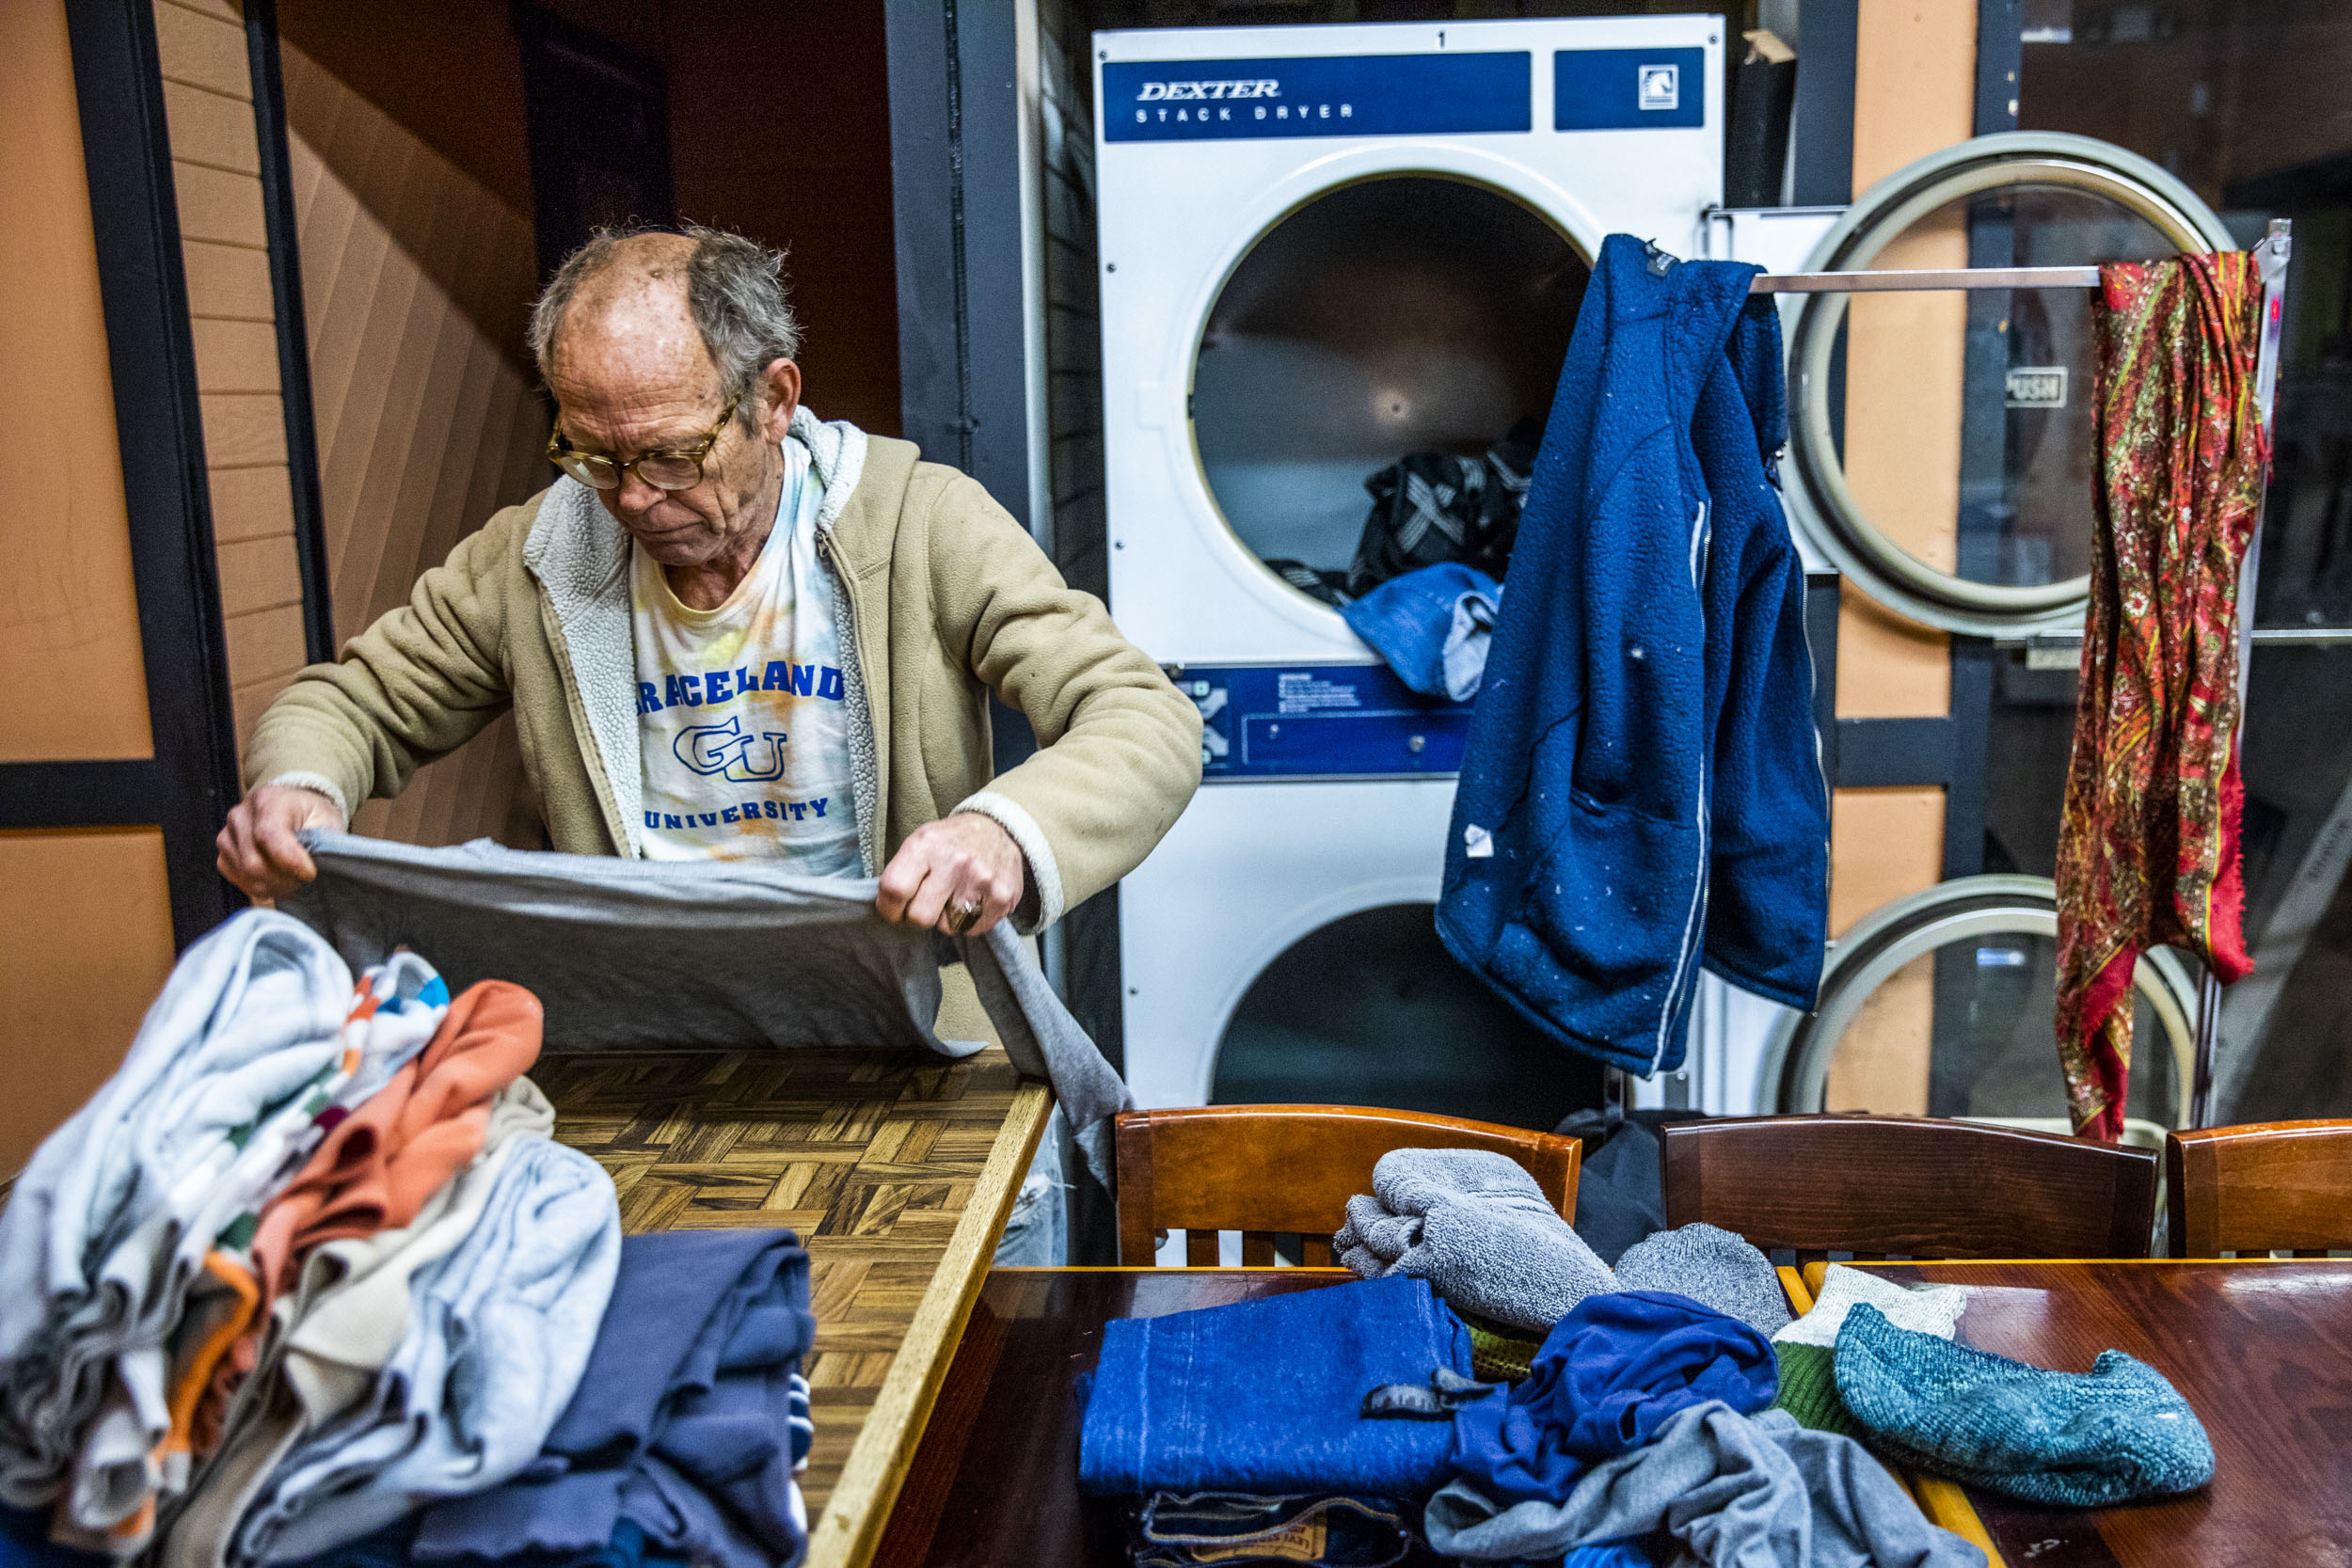 Alan Sutherland, 64, of Seattle does his laundry at King Donuts in Rainier Beach on Sunday, Nov. 18, 2018. Sutherland says he comes every Sunday to do his laundry at King Donuts.